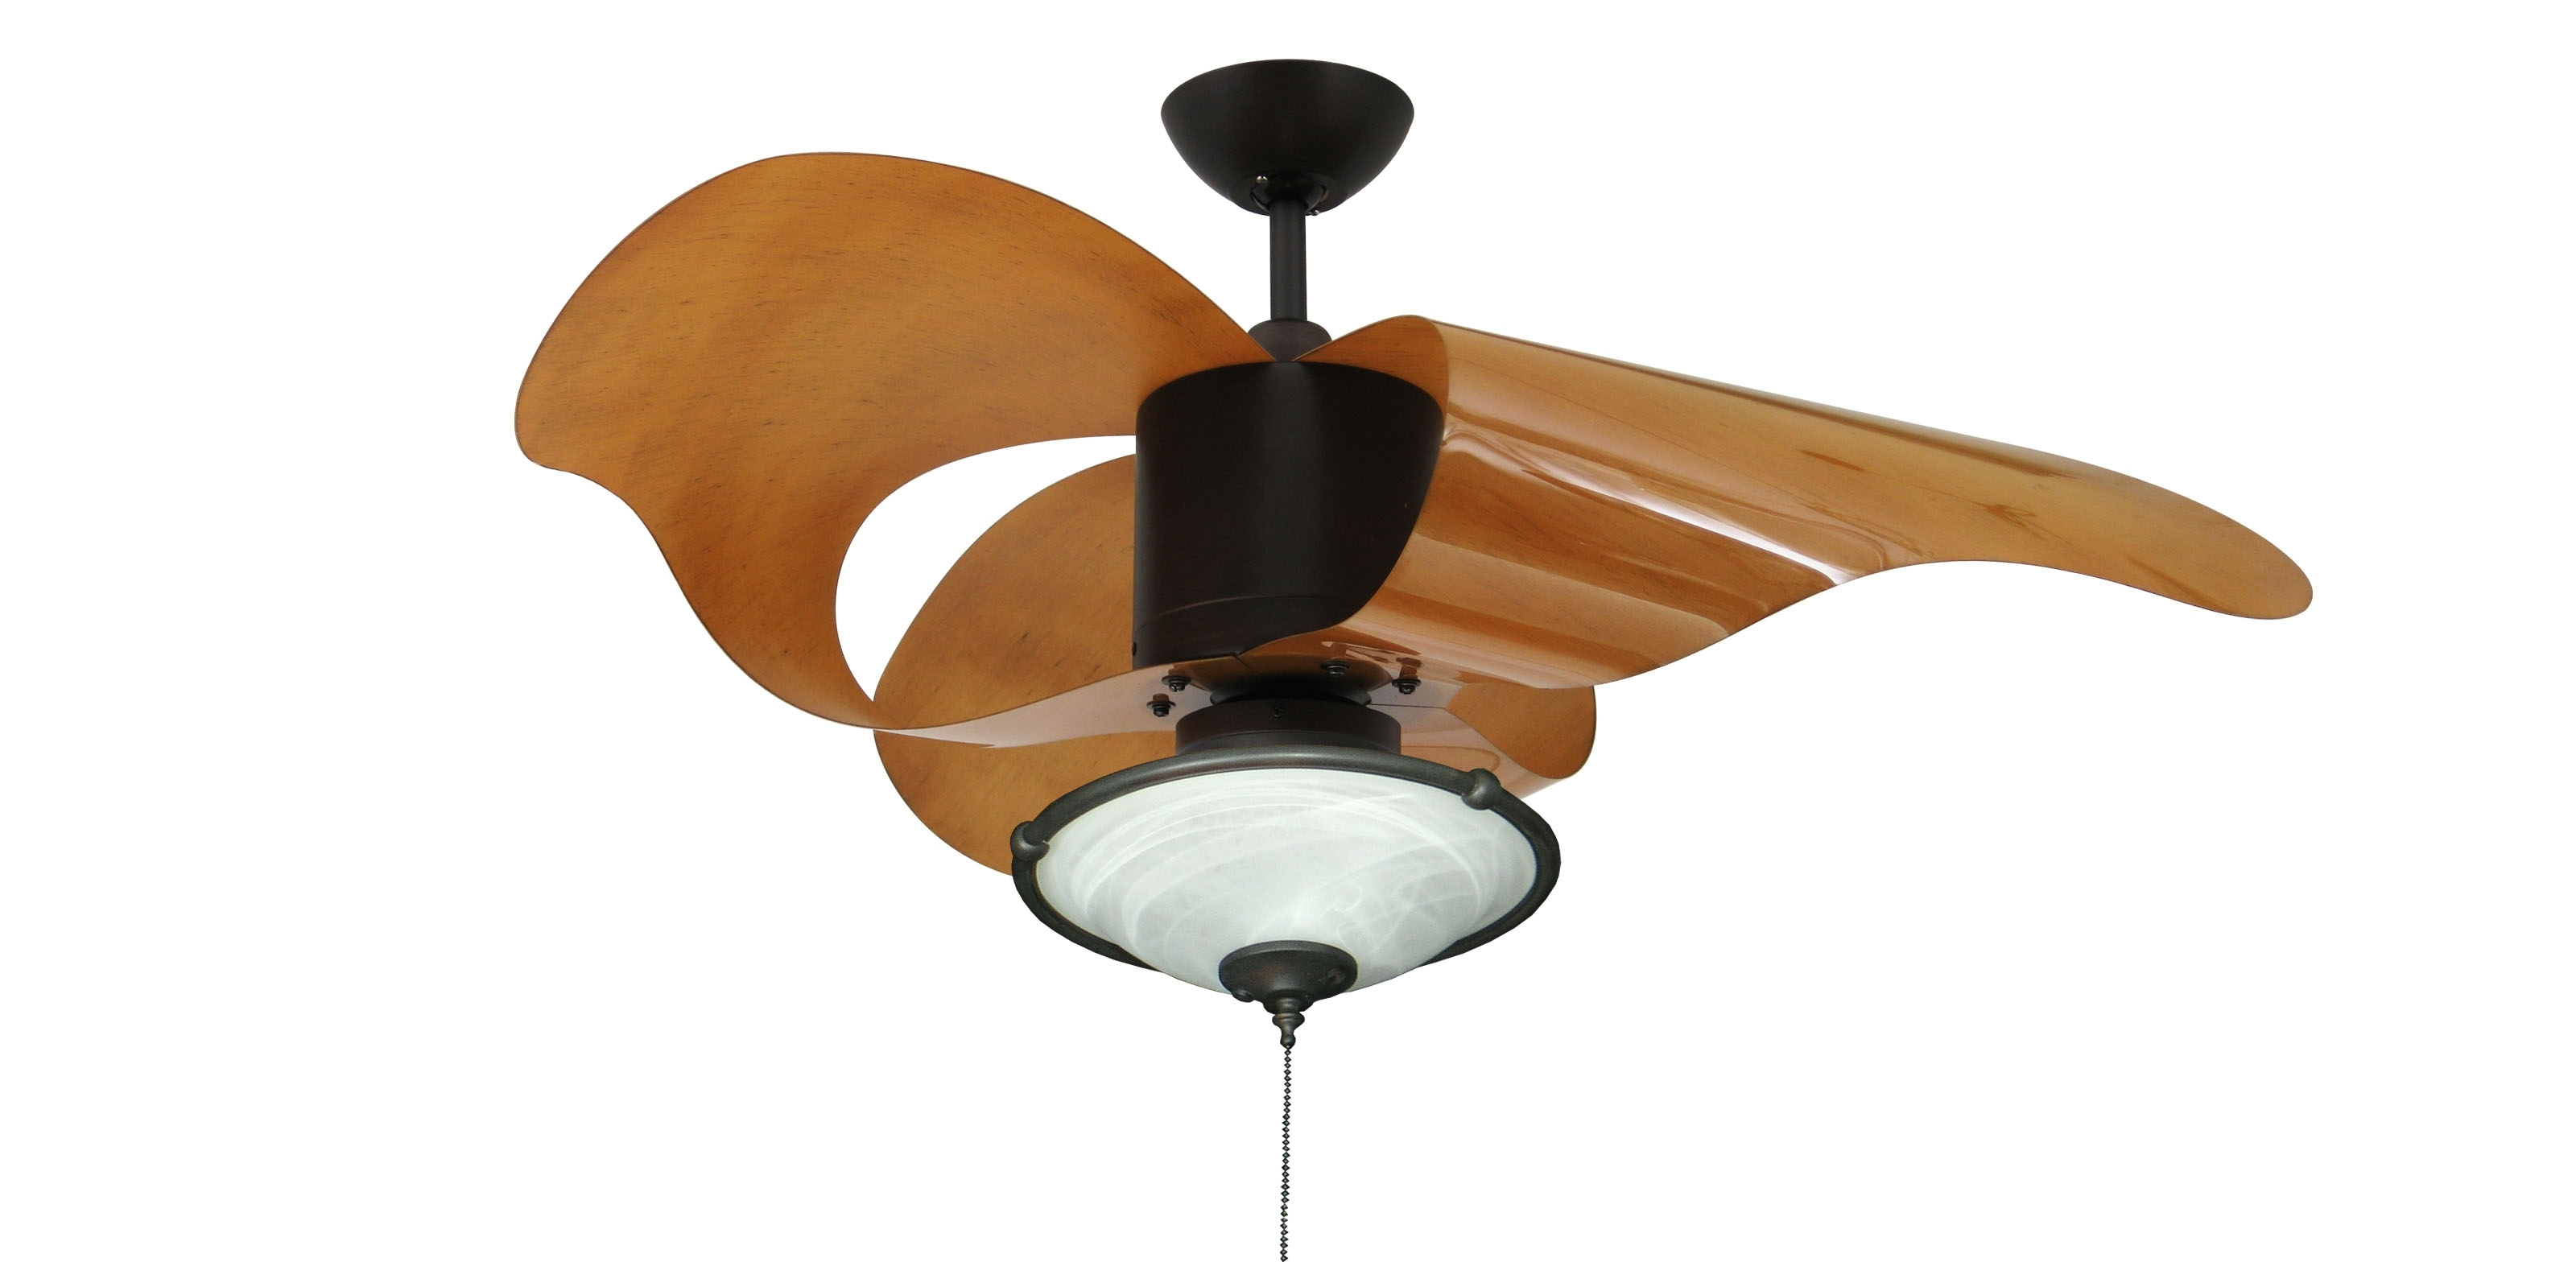 Outdoor Ceiling Fan With Light And Remote – Tariqalhanaee Within 2018 Outdoor Ceiling Fans With Remote And Light (View 17 of 20)